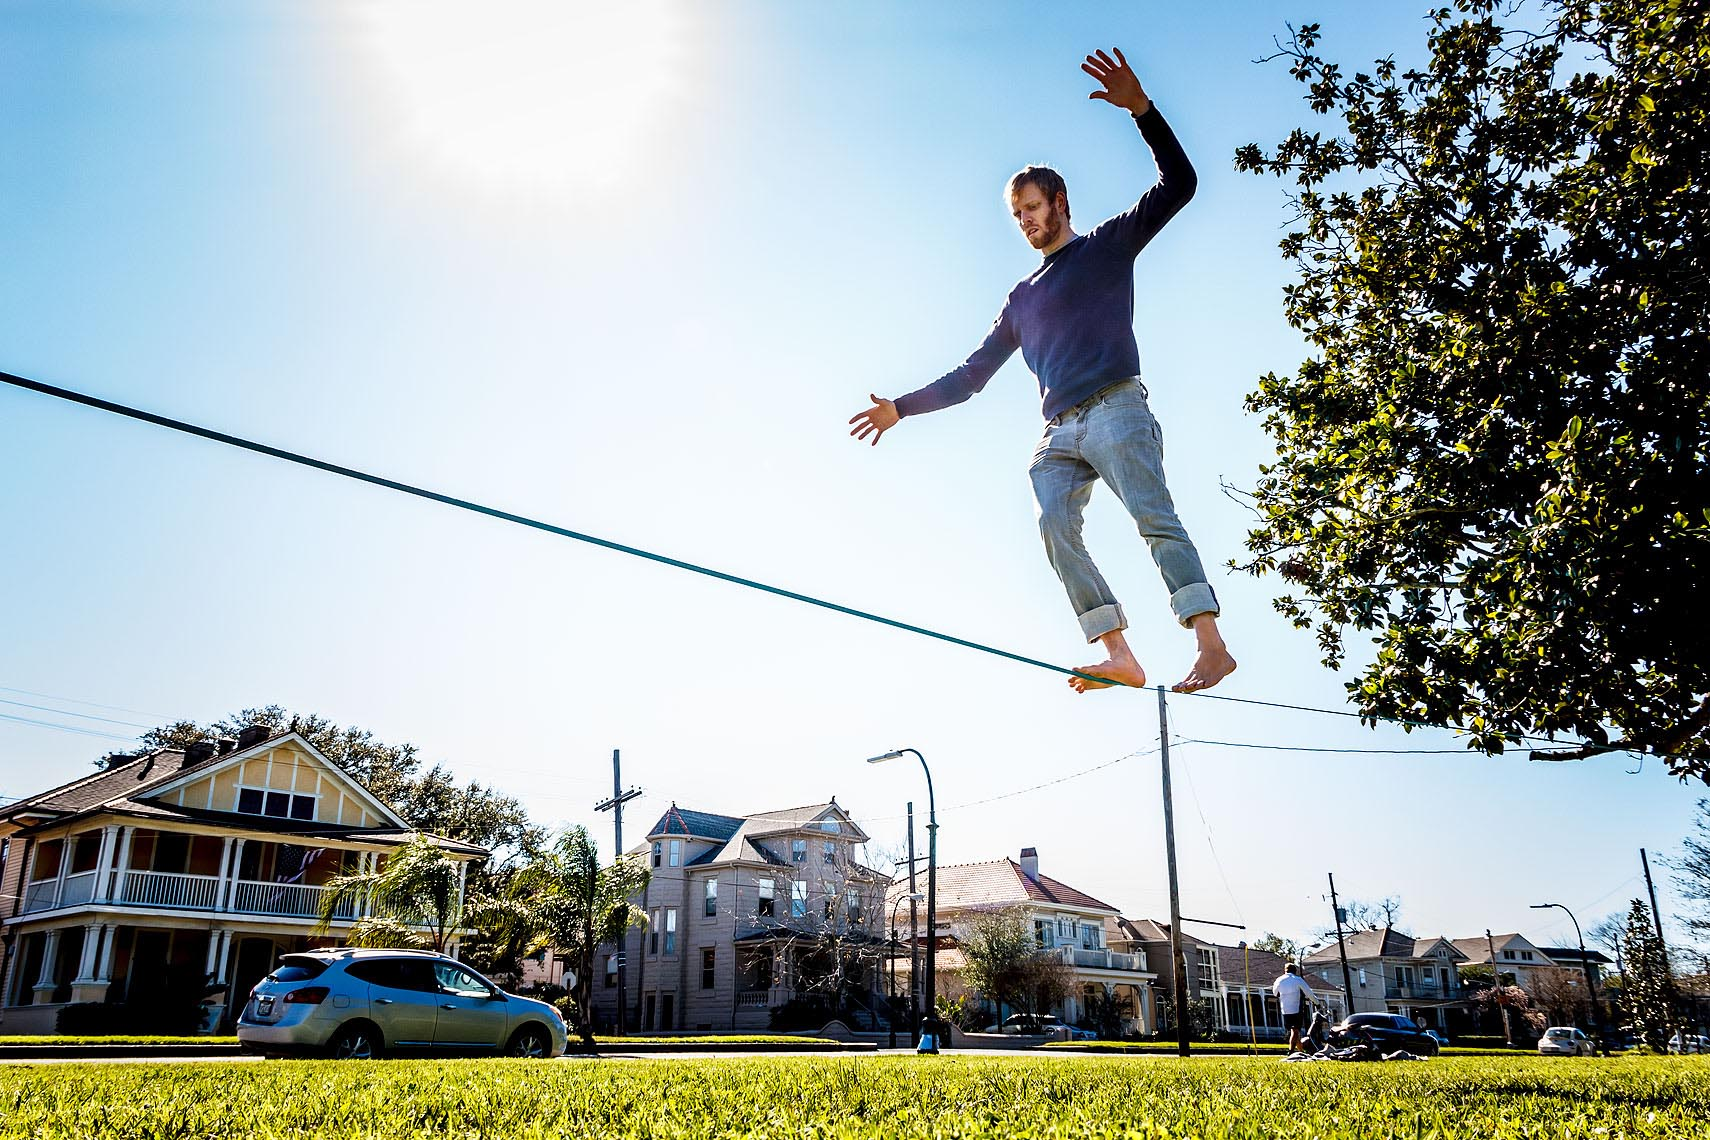 Slackline Walker, City Park, New Orleans, LA